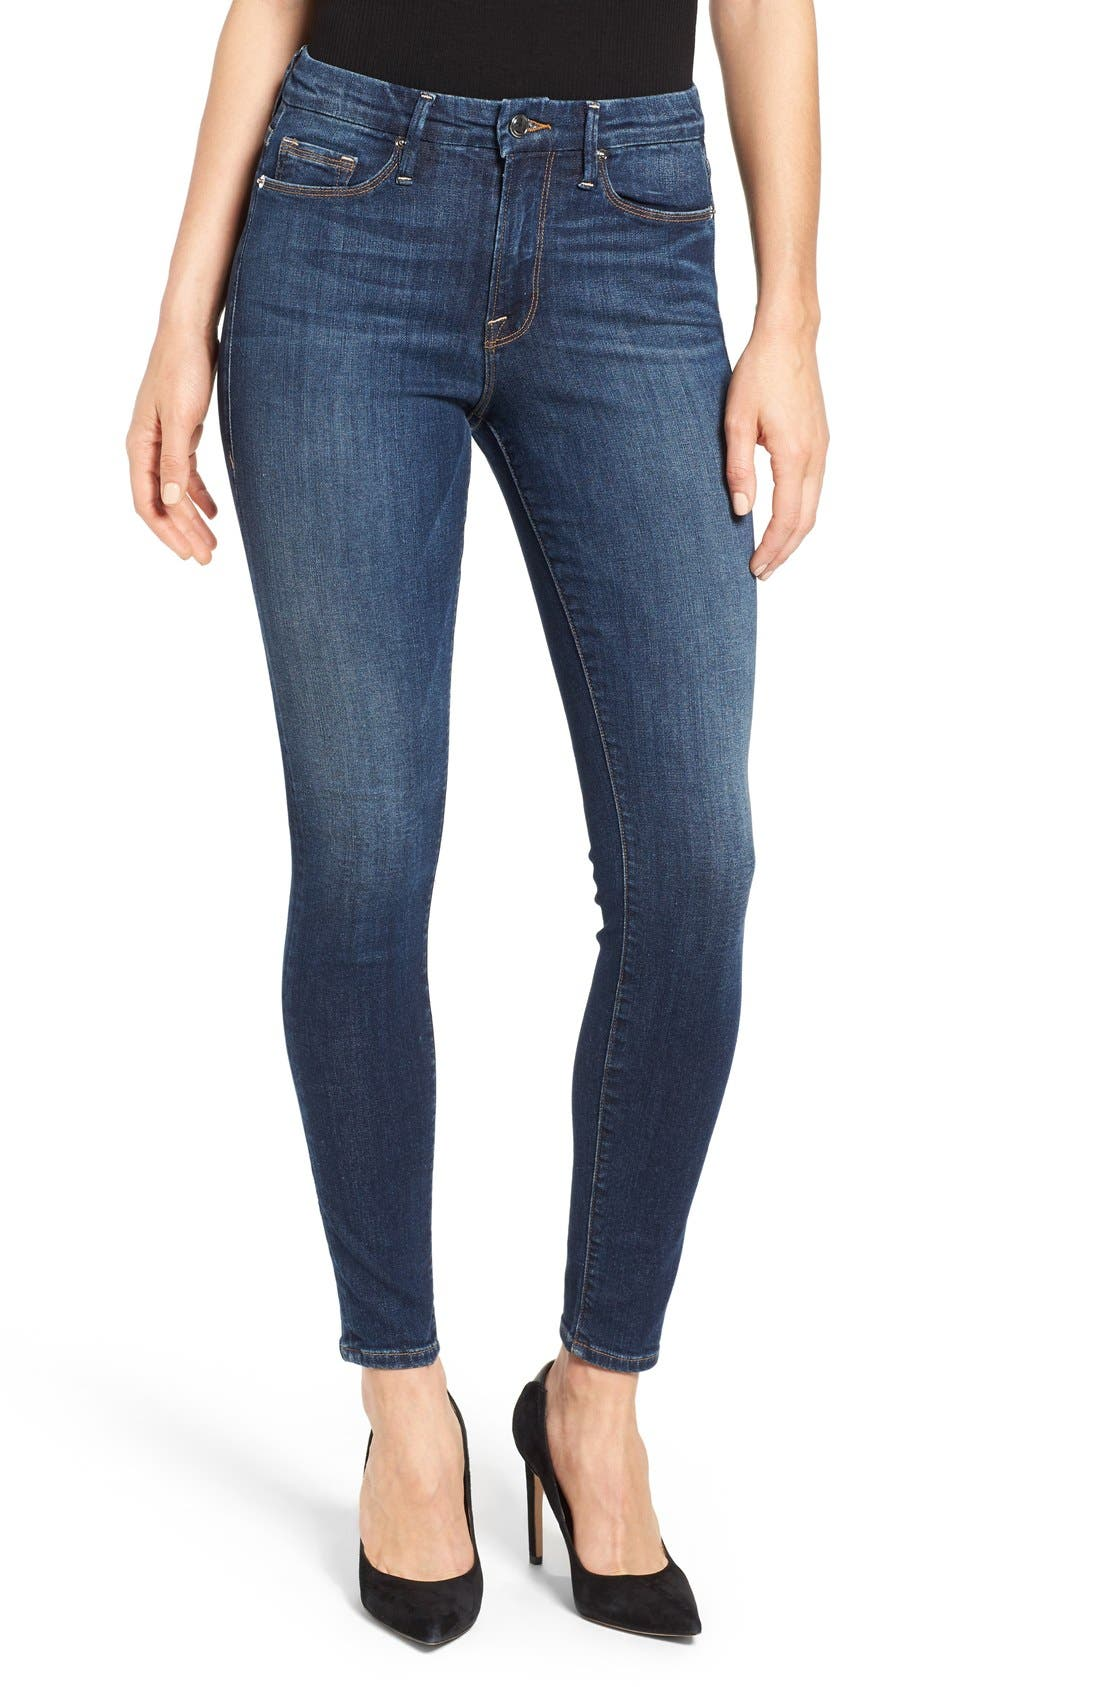 Alternate Image 1 Selected - Good American Good Legs High Rise Skinny Jeans (Blue 004)